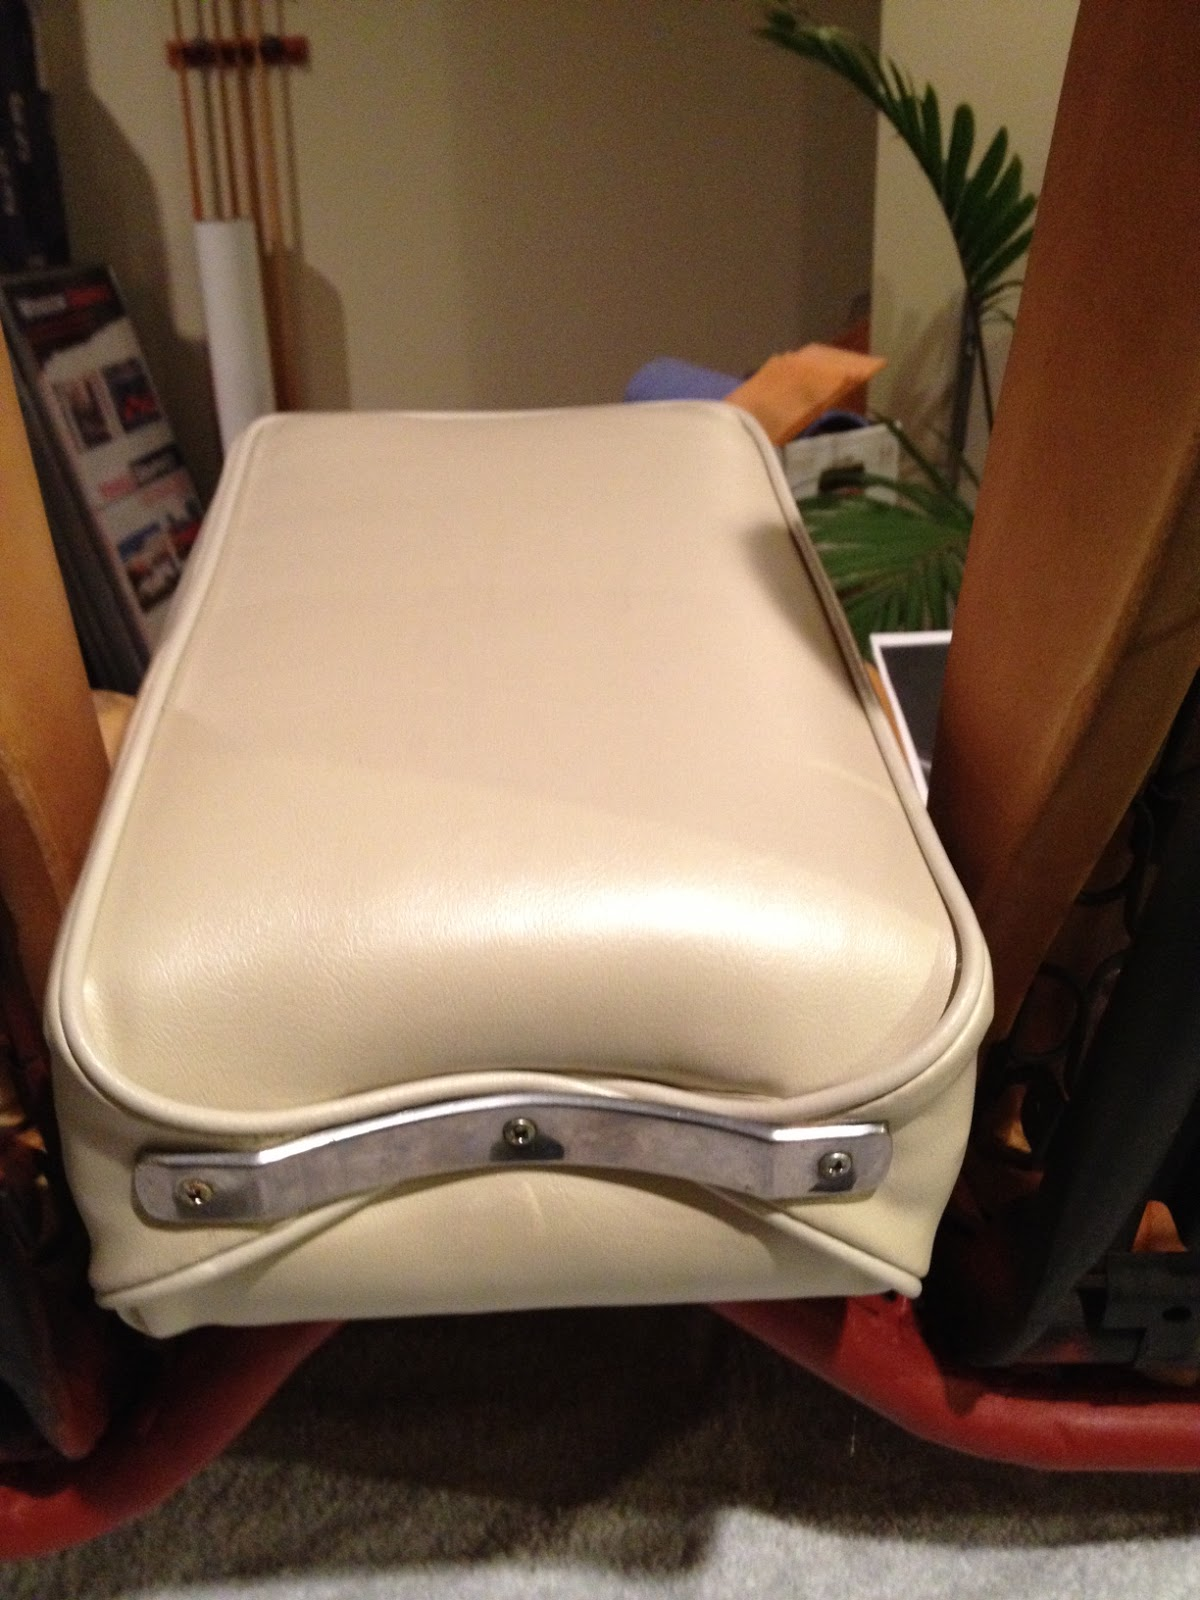 Superb img of  : 1965 Ford Mustang Rare Front Bench Seat and Centre Armrest with #9F692C color and 1200x1600 pixels